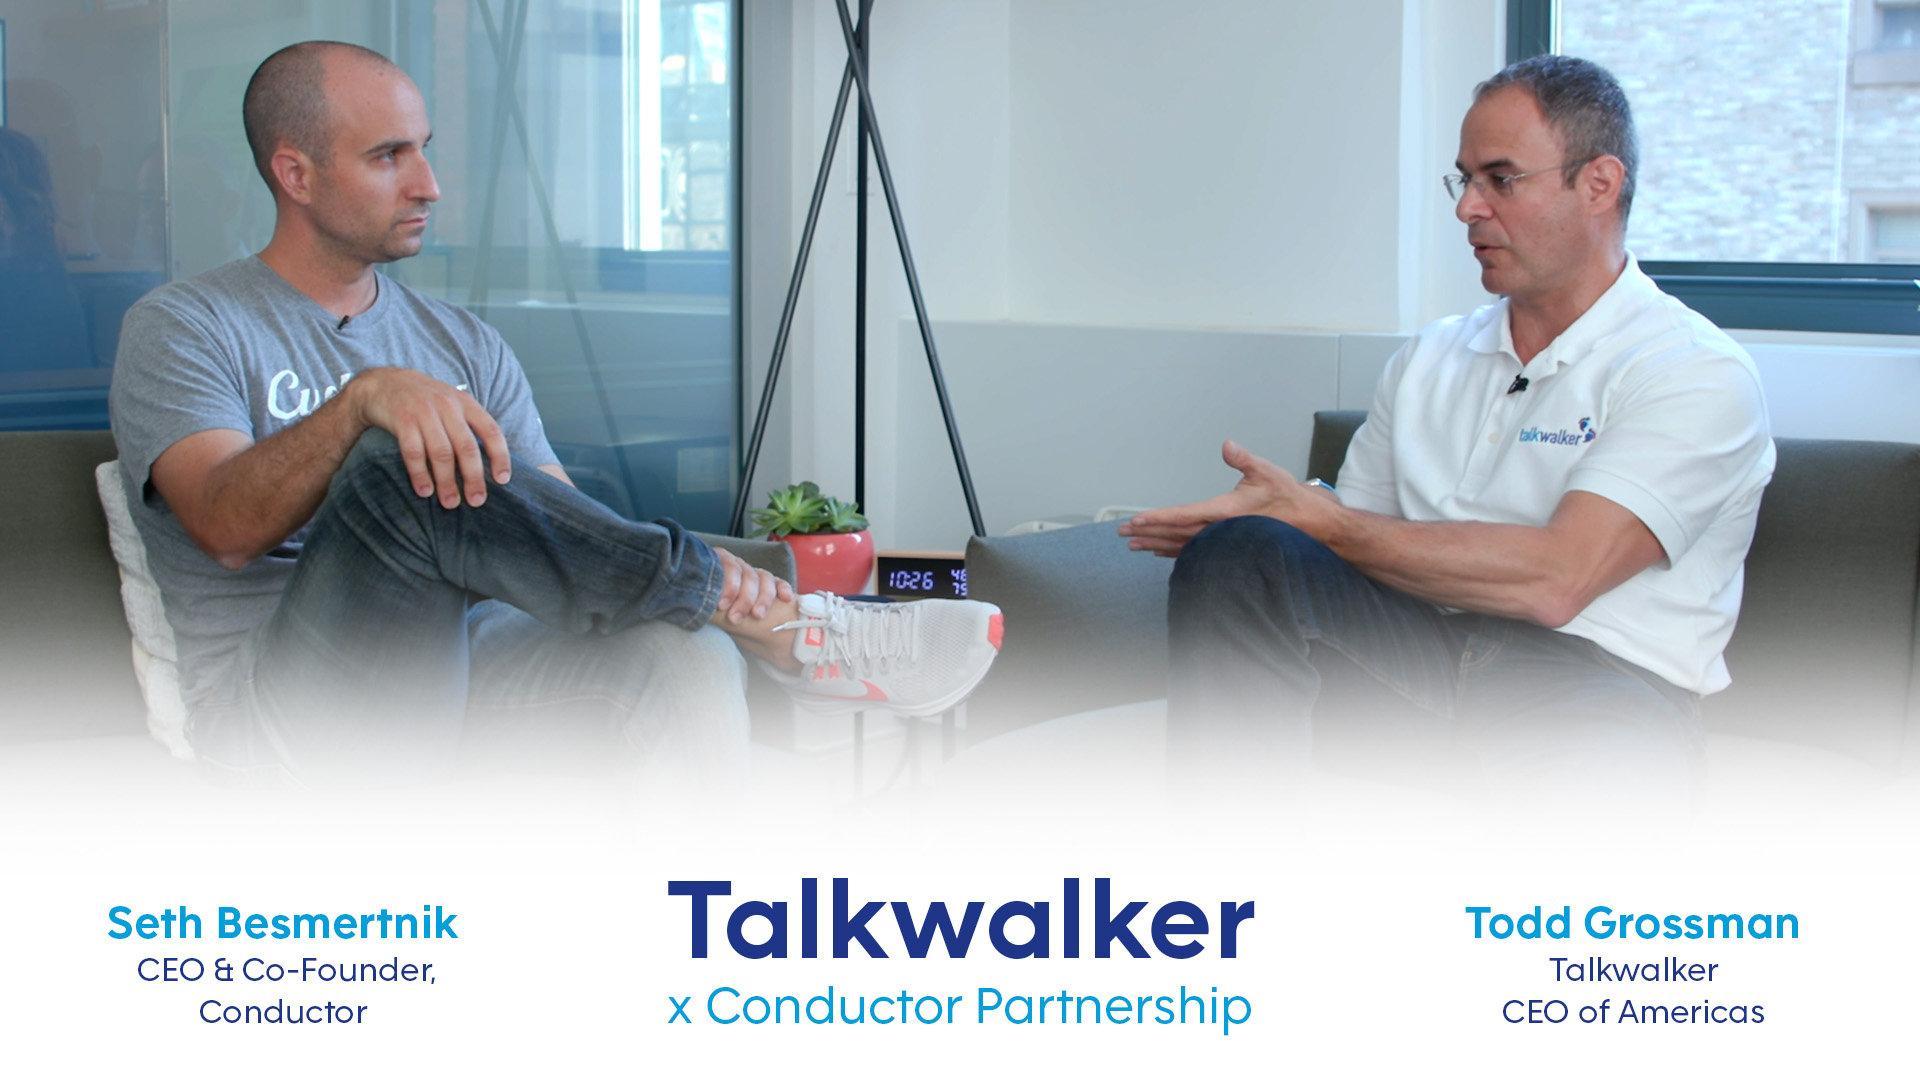 Video Interview & transcript of an interview between the CEOs of Talkwalker & Conductor regarding the partnership between the two companies (search + social data)